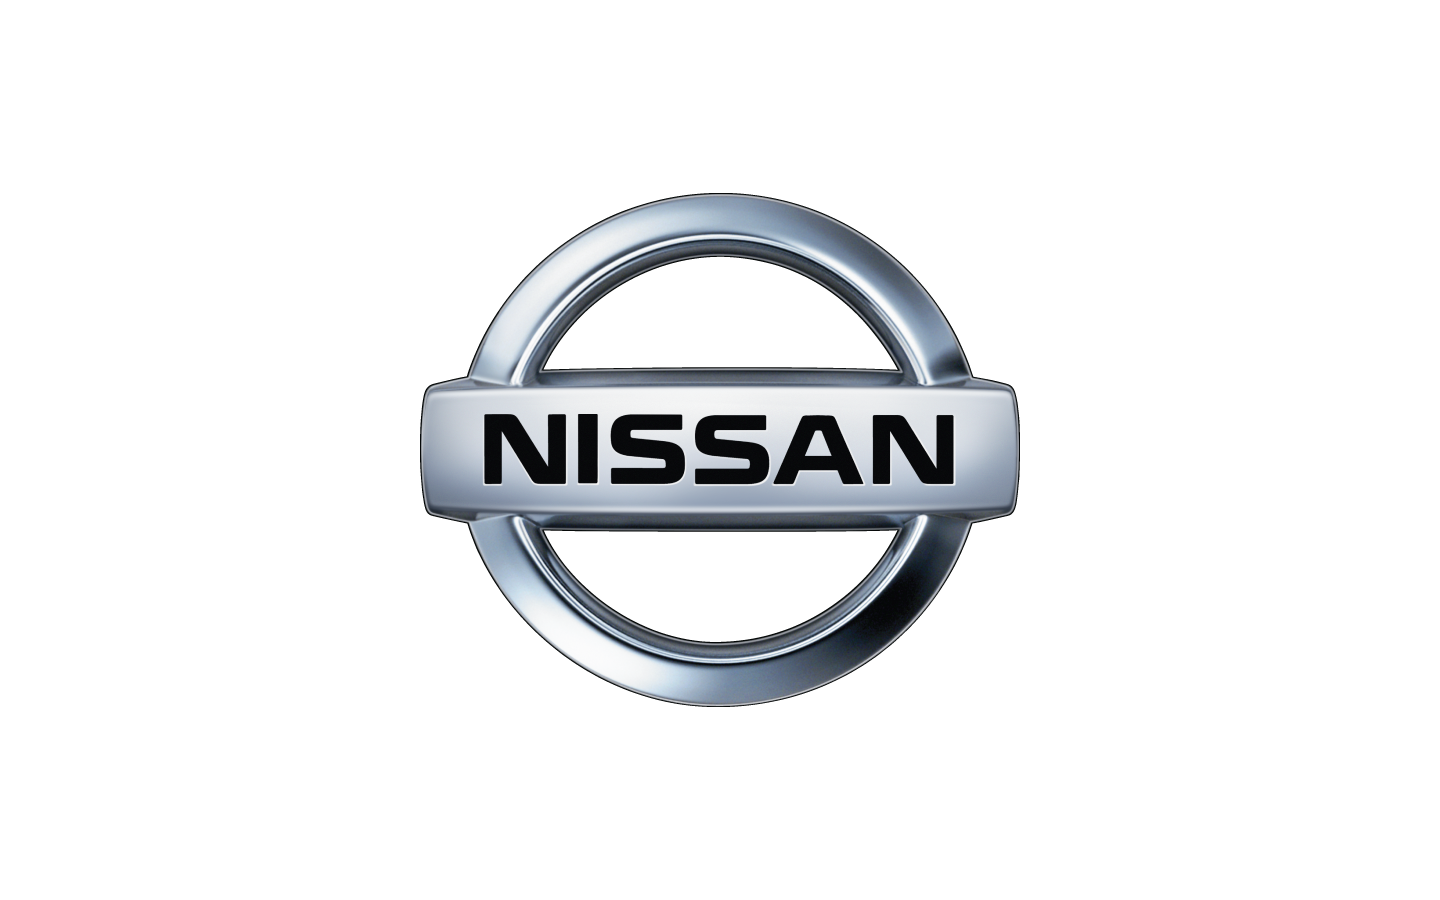 Nissan Logo, Hd Png, Meaning, Information - Nissan Logo PNG